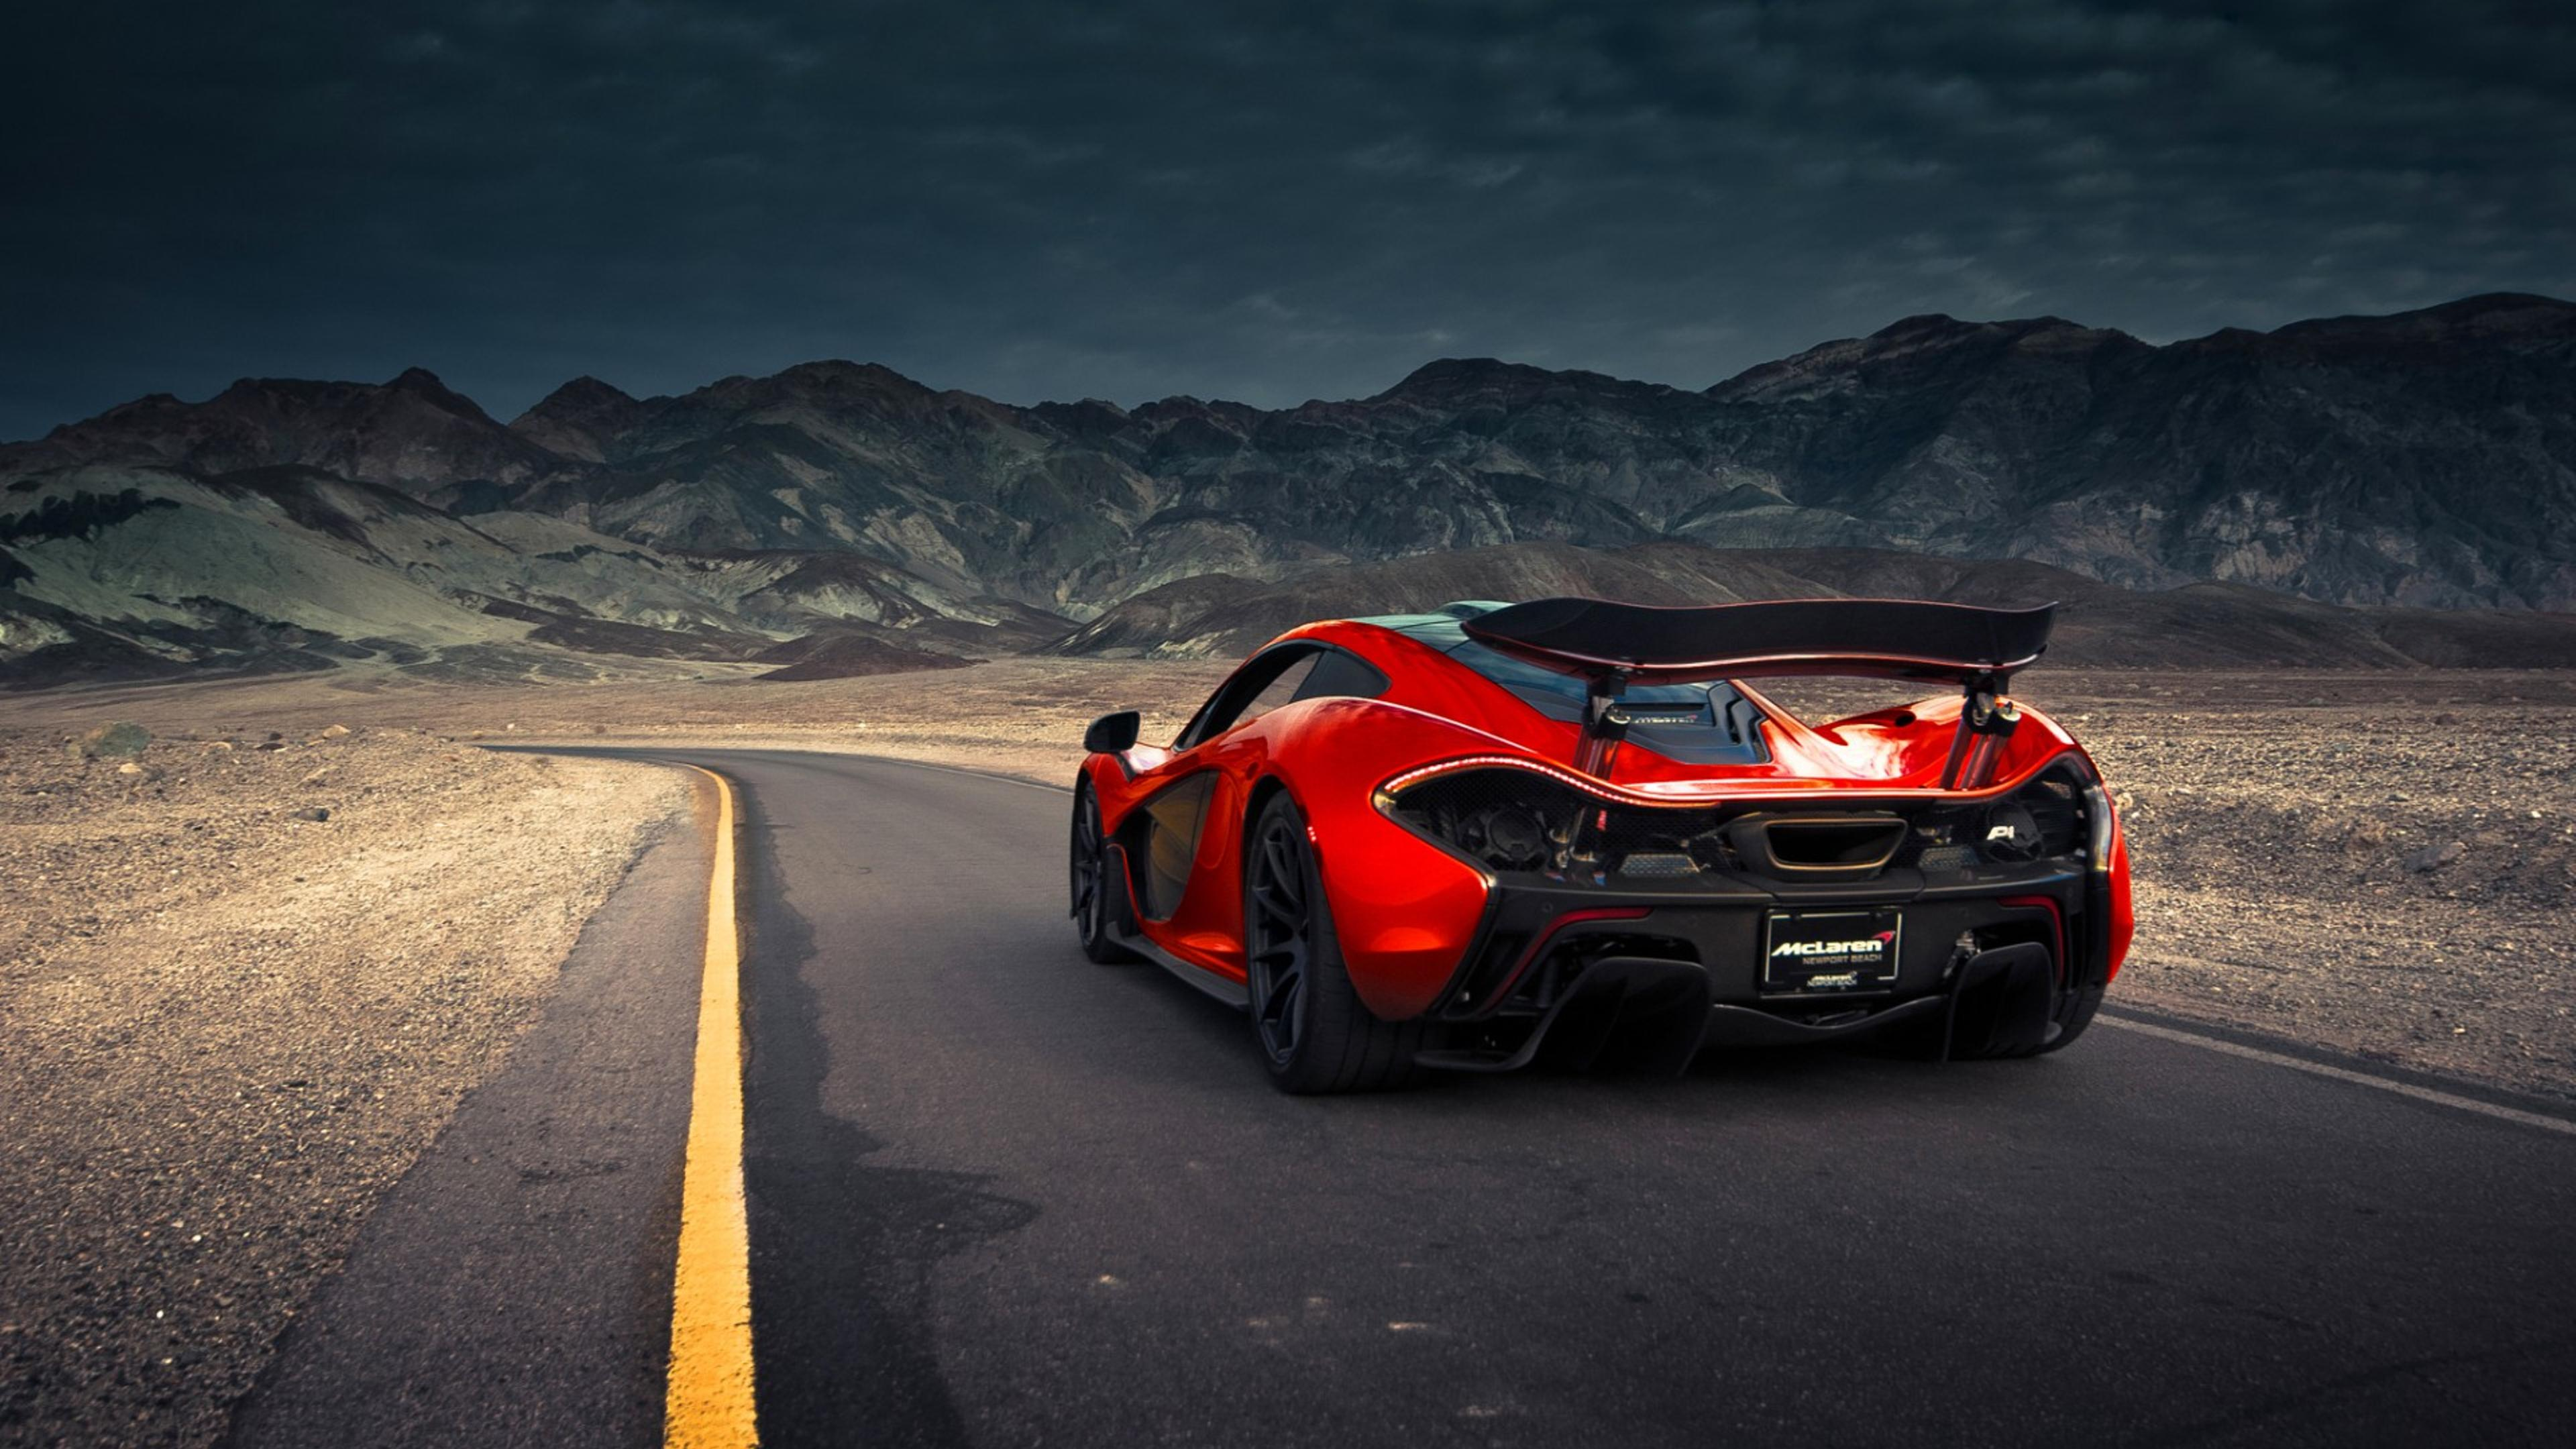 Mclaren P1 Going Through The Mountains Wallpaper Download 3840x2160